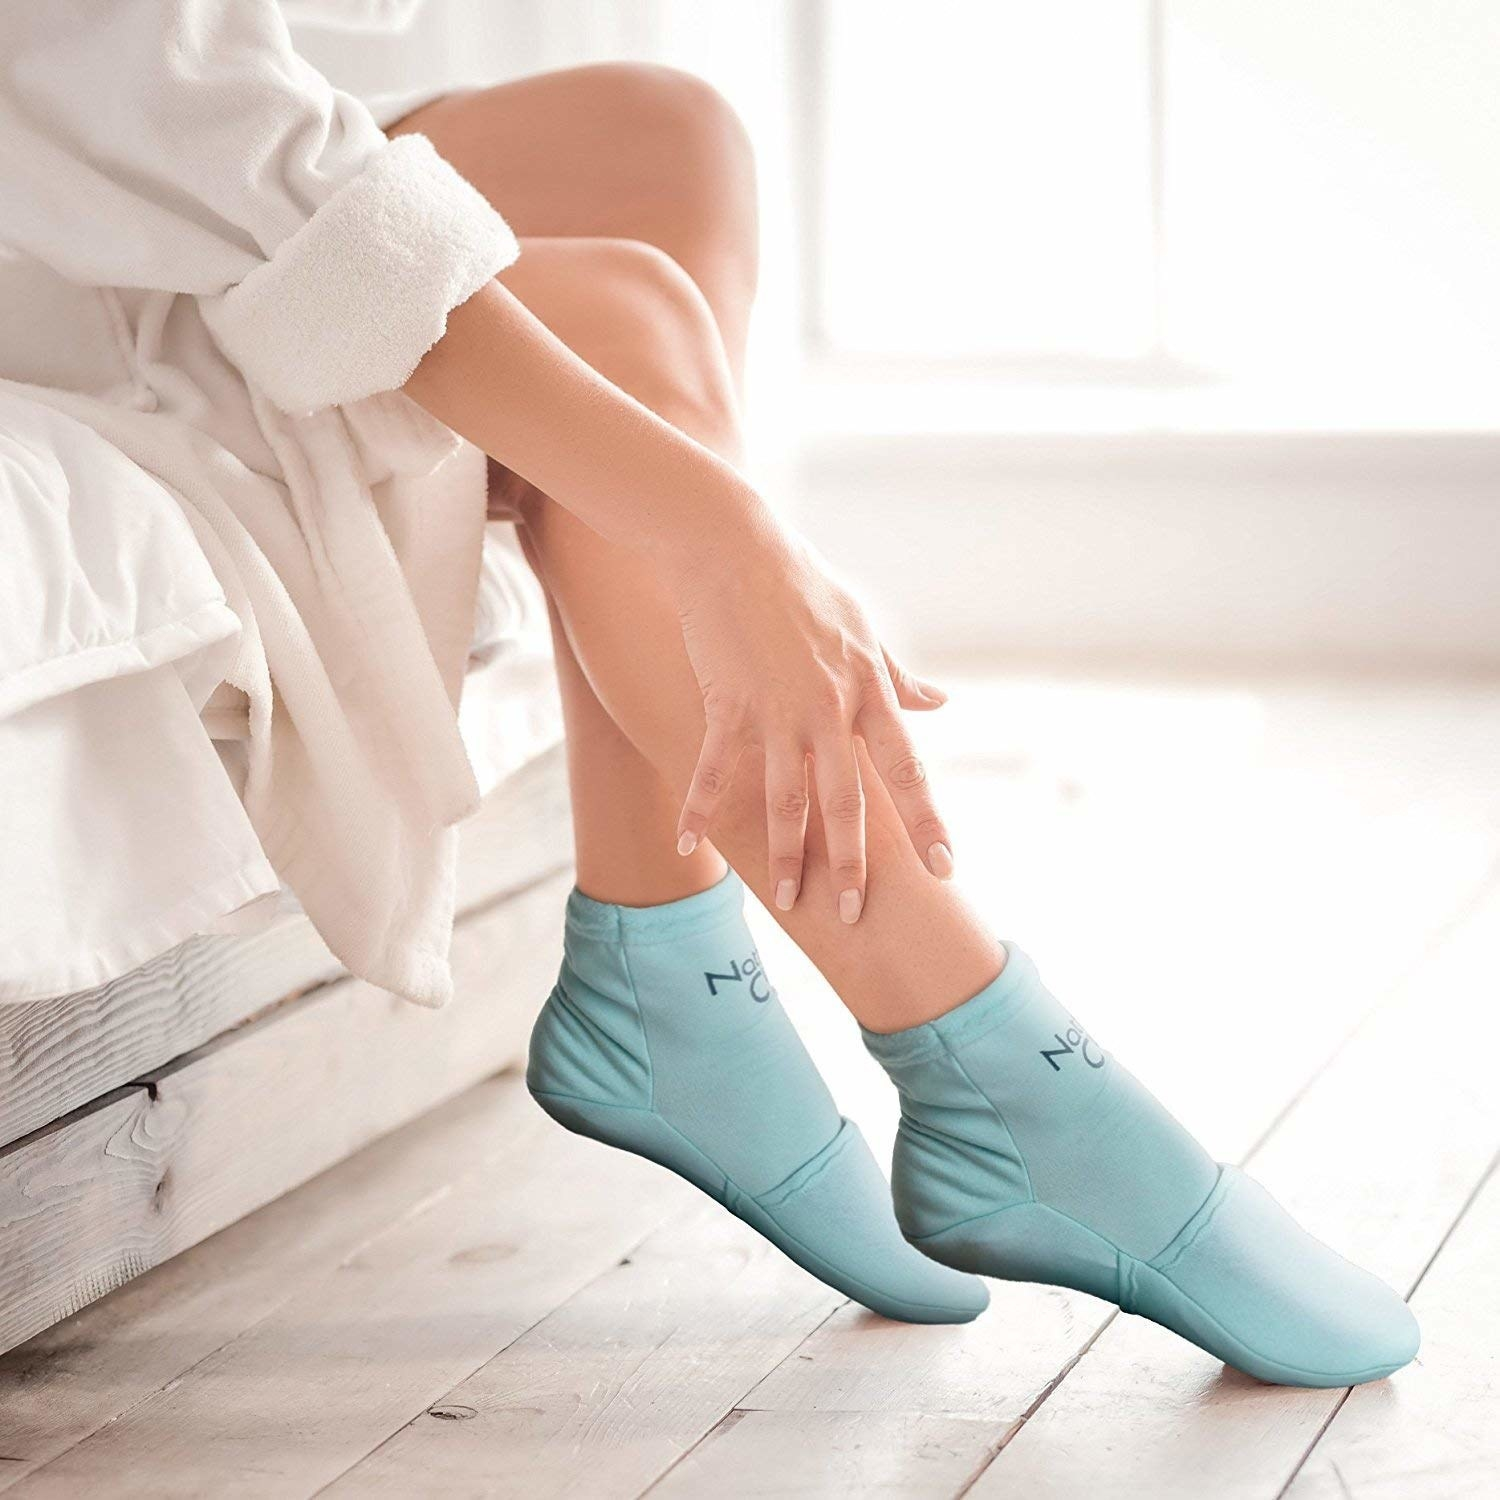 A person wearing the cold socks and touching their leg